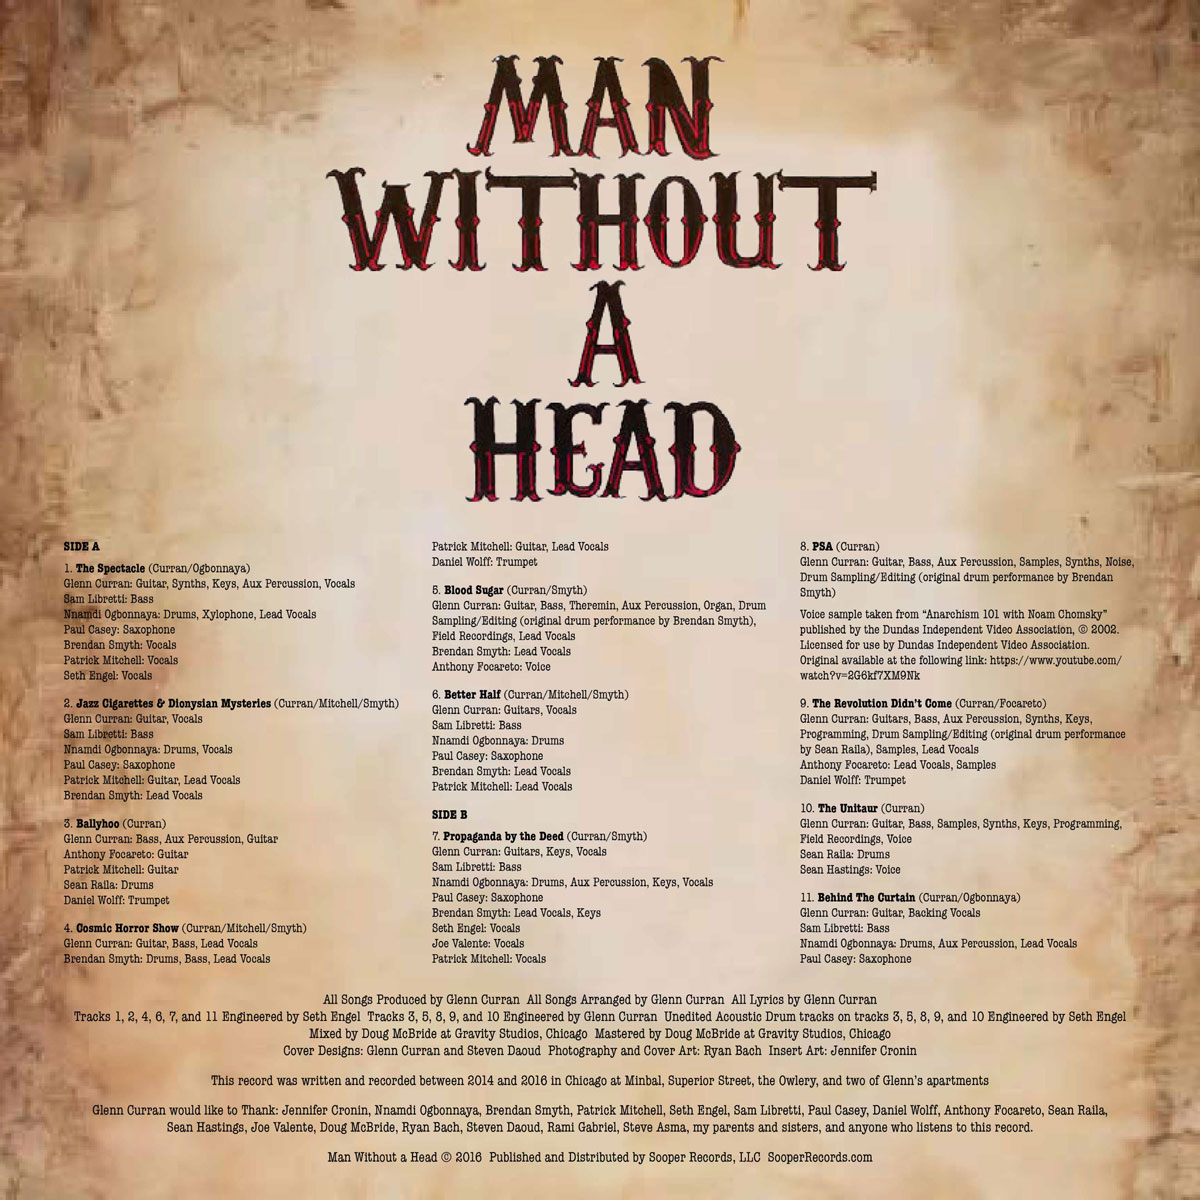 Sooper Records - Man Without A Head